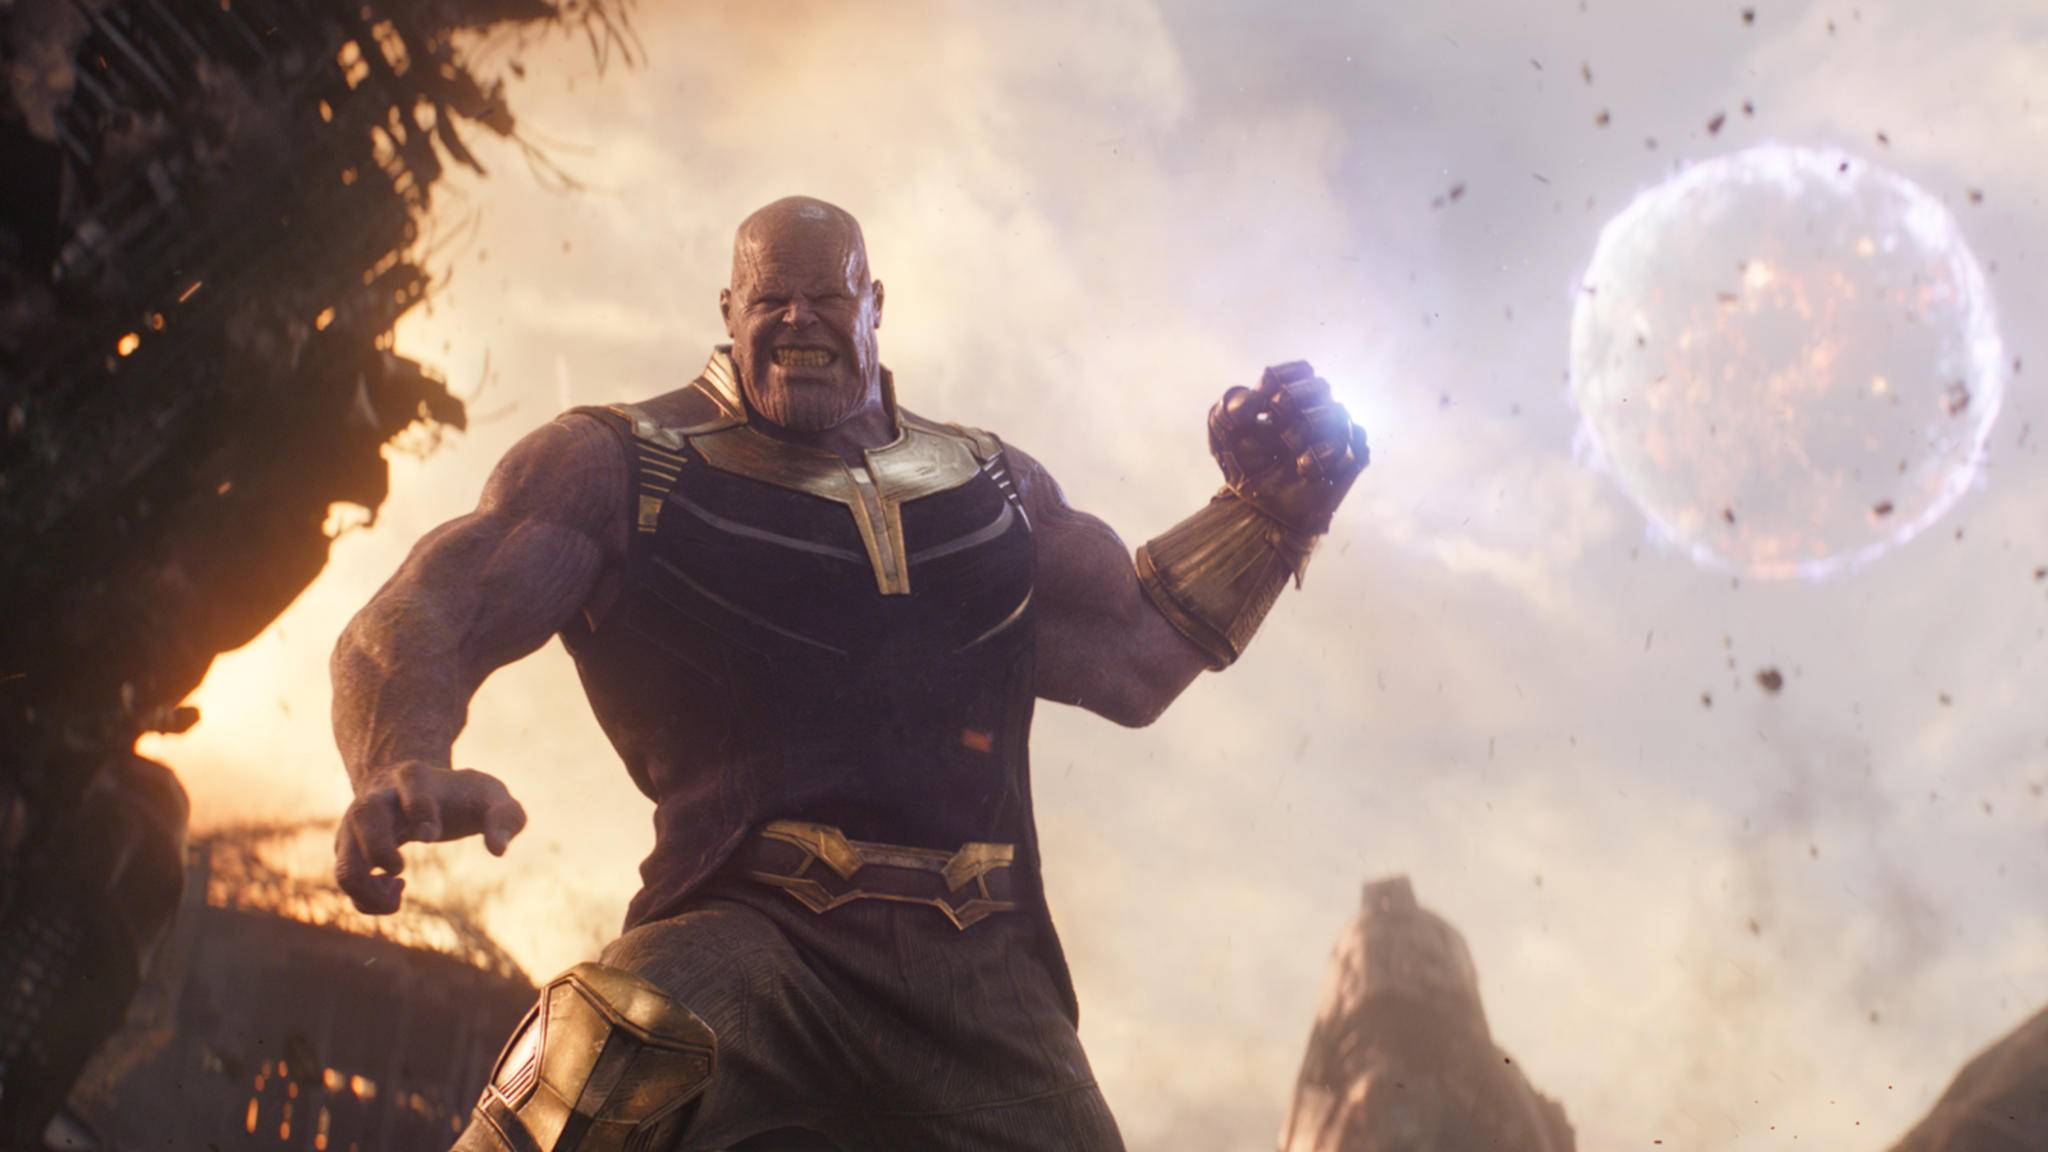 """Fortnite"": Thanos mischt beim Battle-Royale mit!"